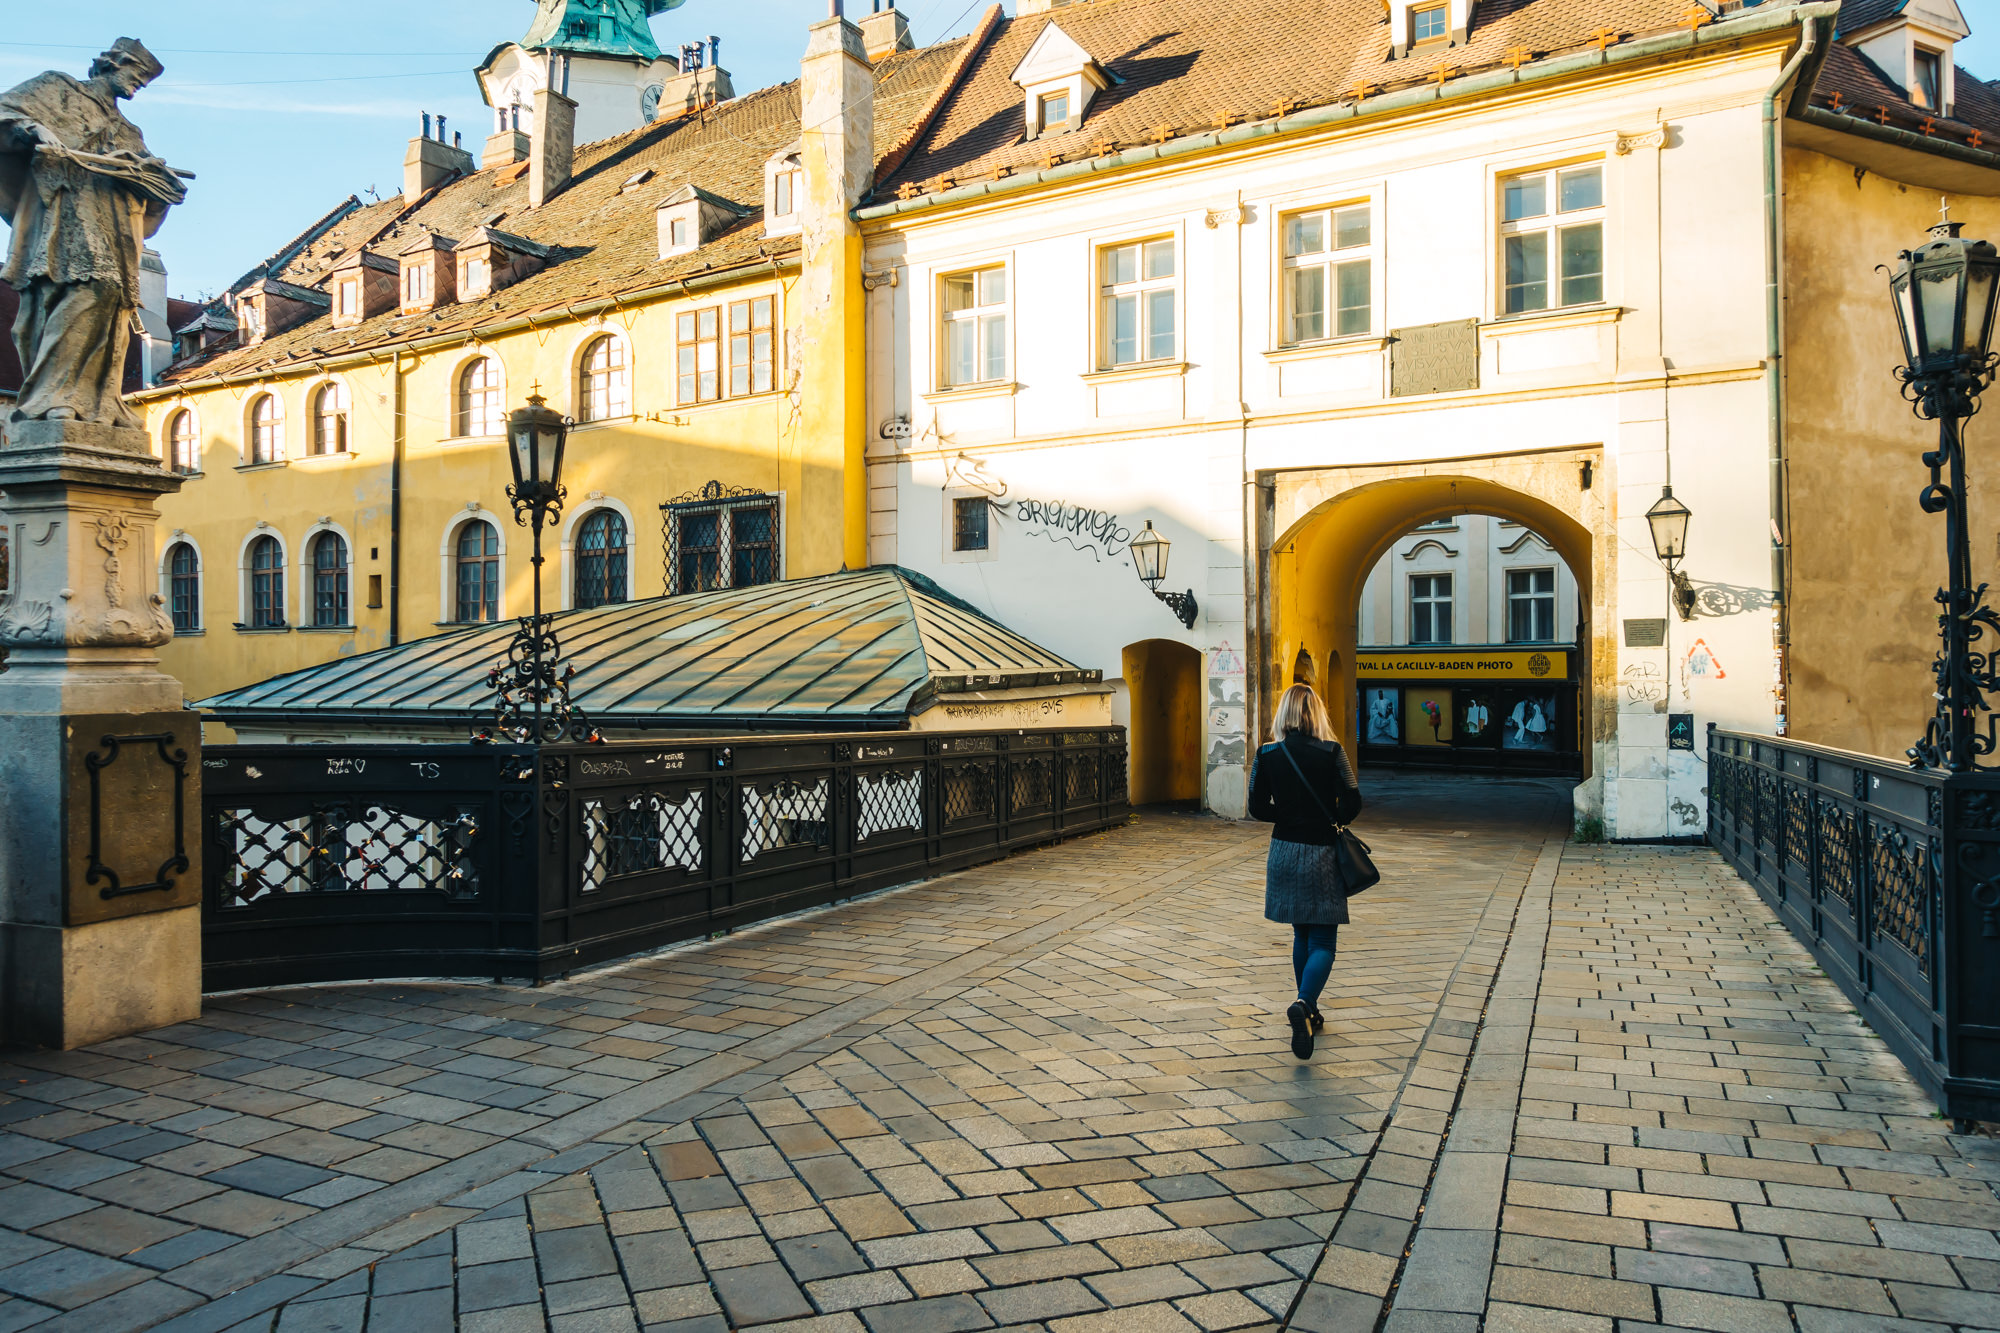 St. Michael's Gate of Old Town